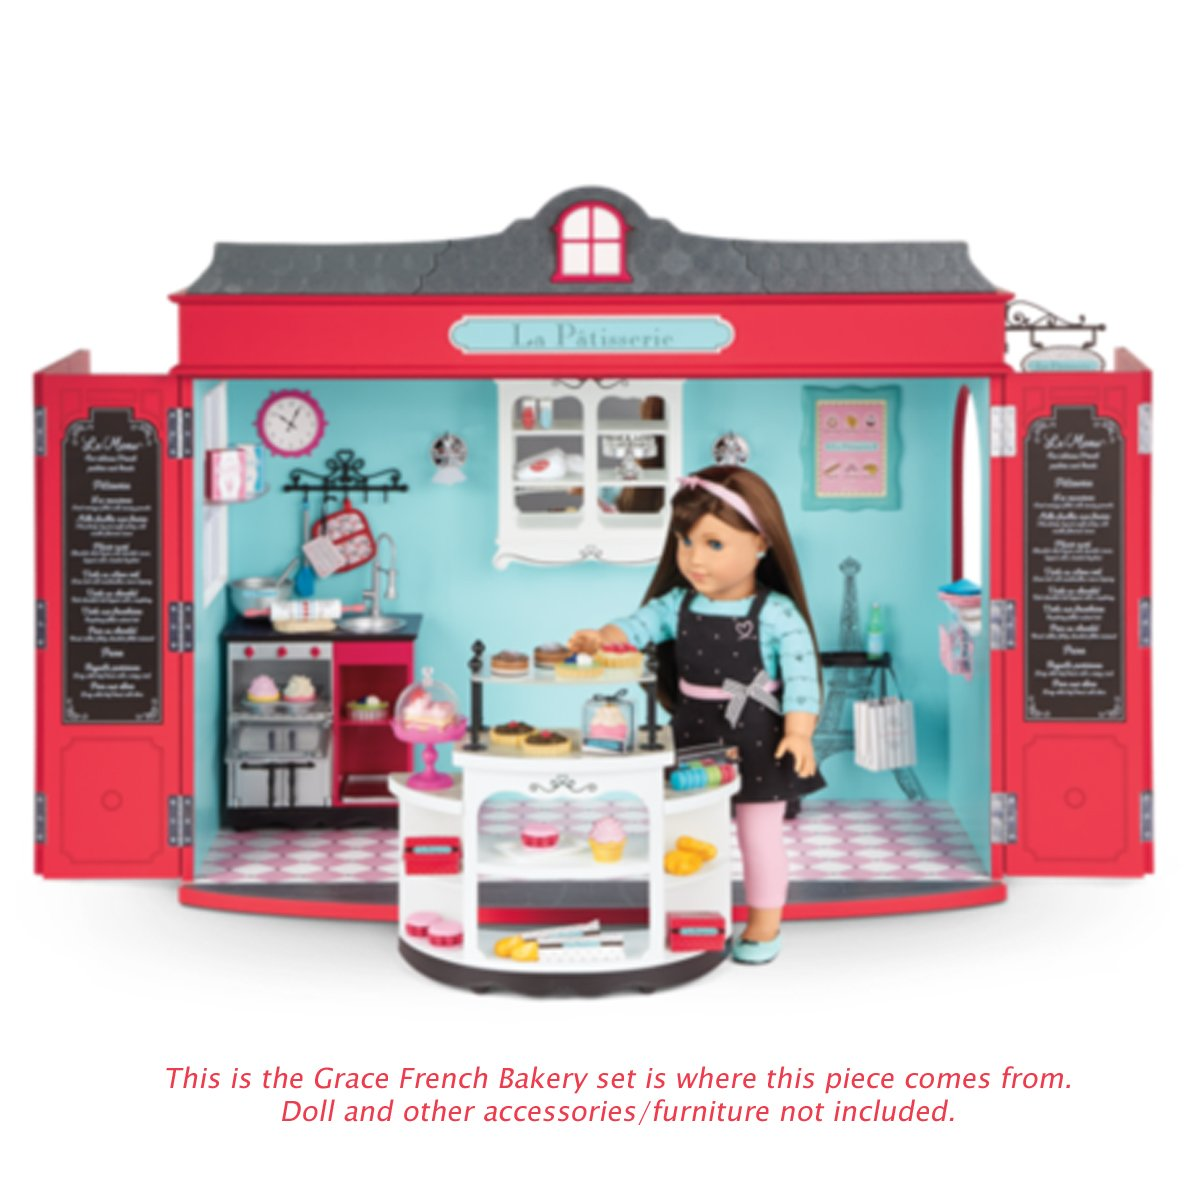 Amazon.com: American Girl Grace French Bakery Kitchen Oven Sink for ...